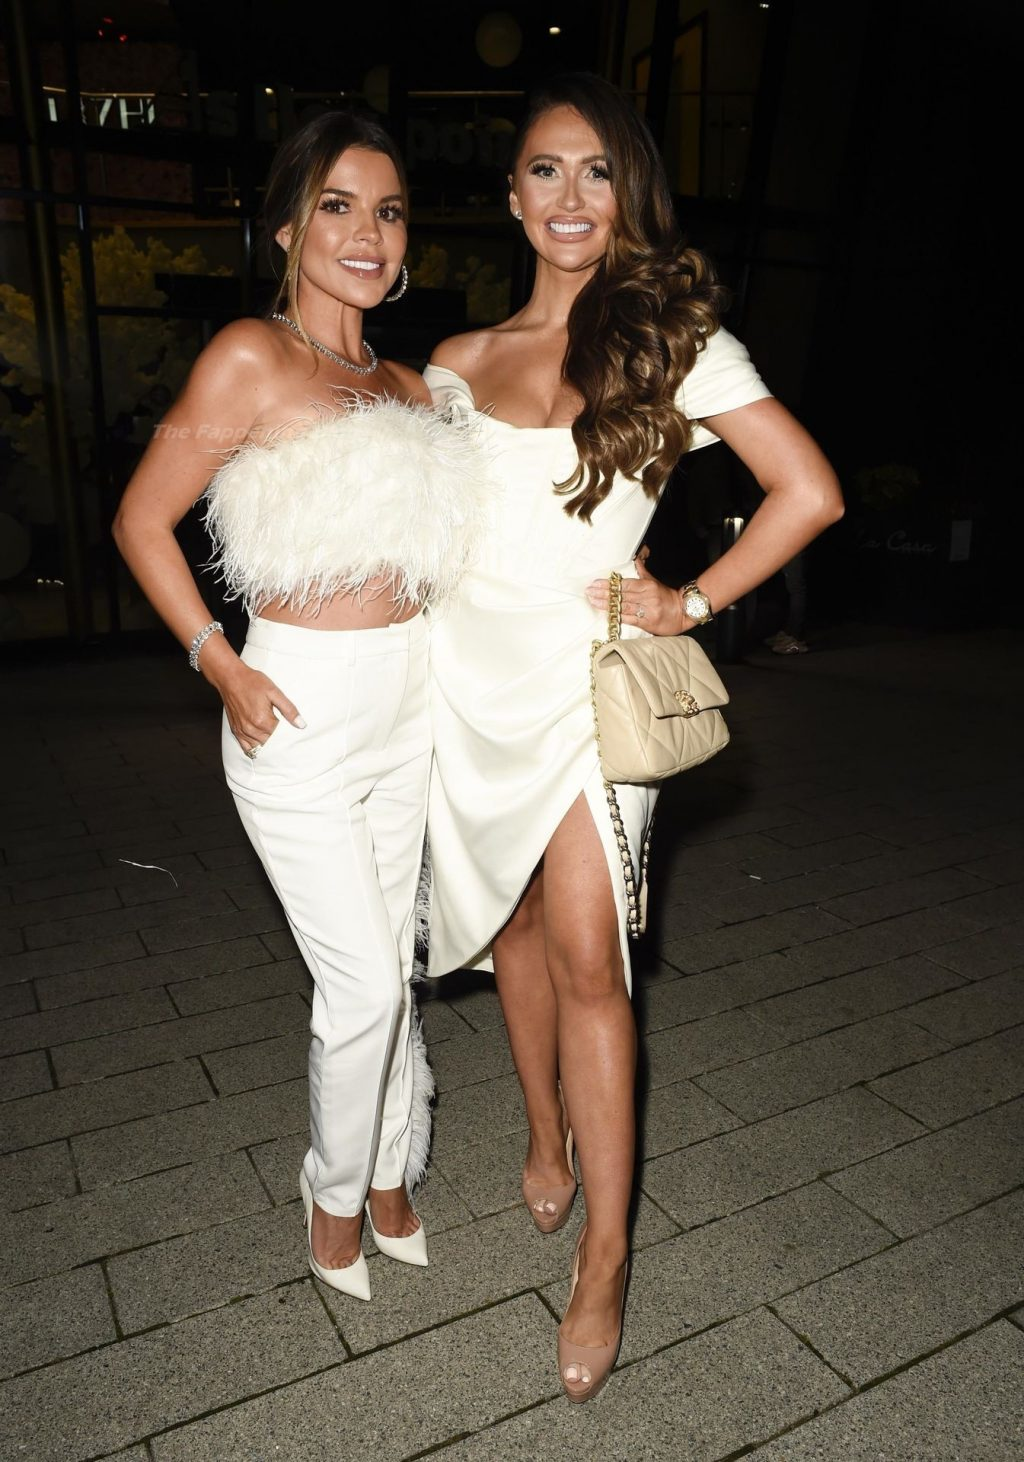 Leggy Charlotte Dawson Looks Hot While Arriving at Ryan Kay's Birthday Party in Manchester (13 Photos)